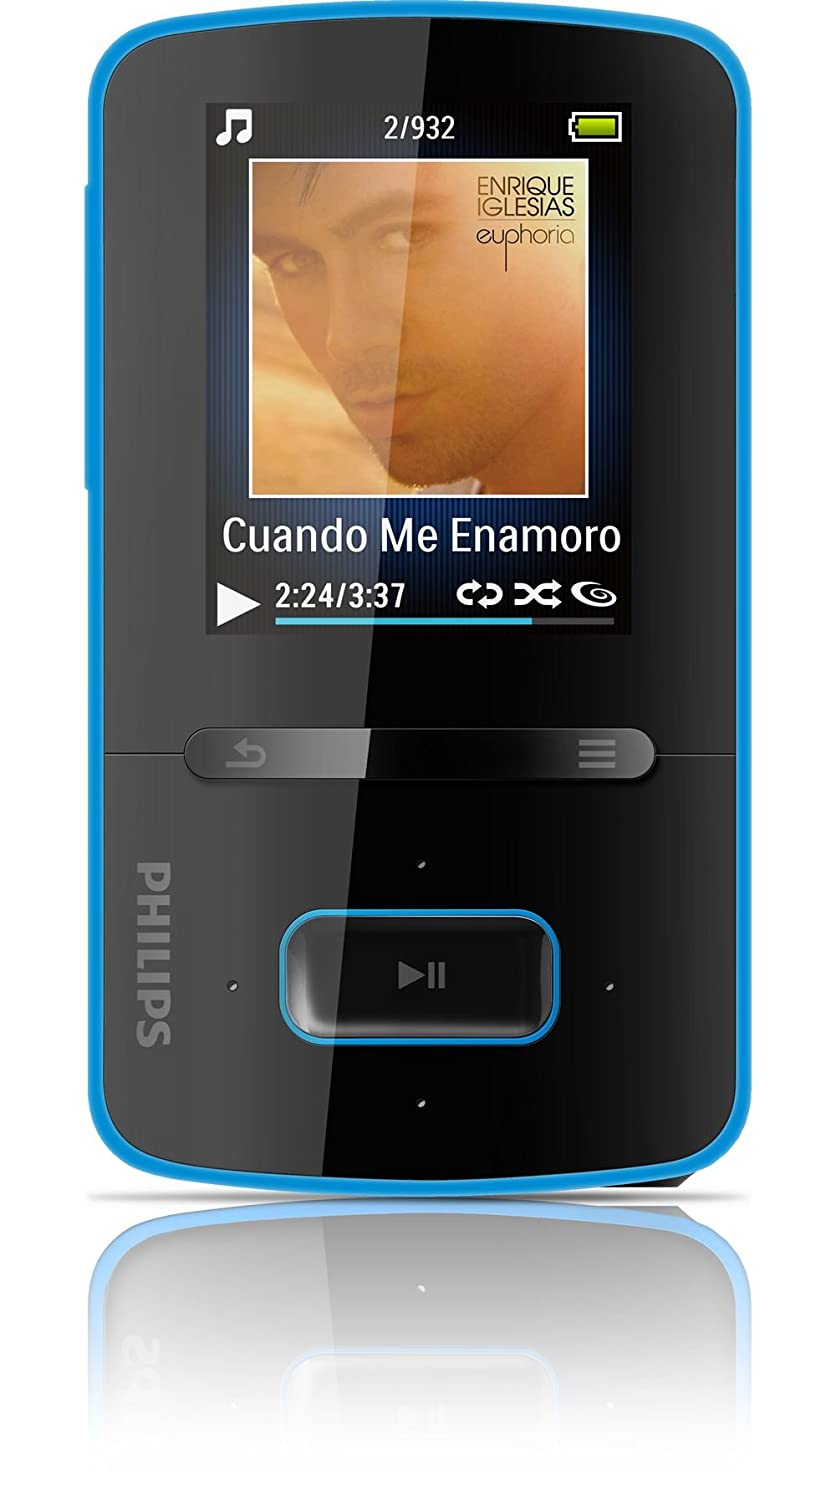 philips gogear vibe 8gb mp3 player blue amazon co uk audio hifi rh amazon co uk Example User Guide Kindle Fire User Guide